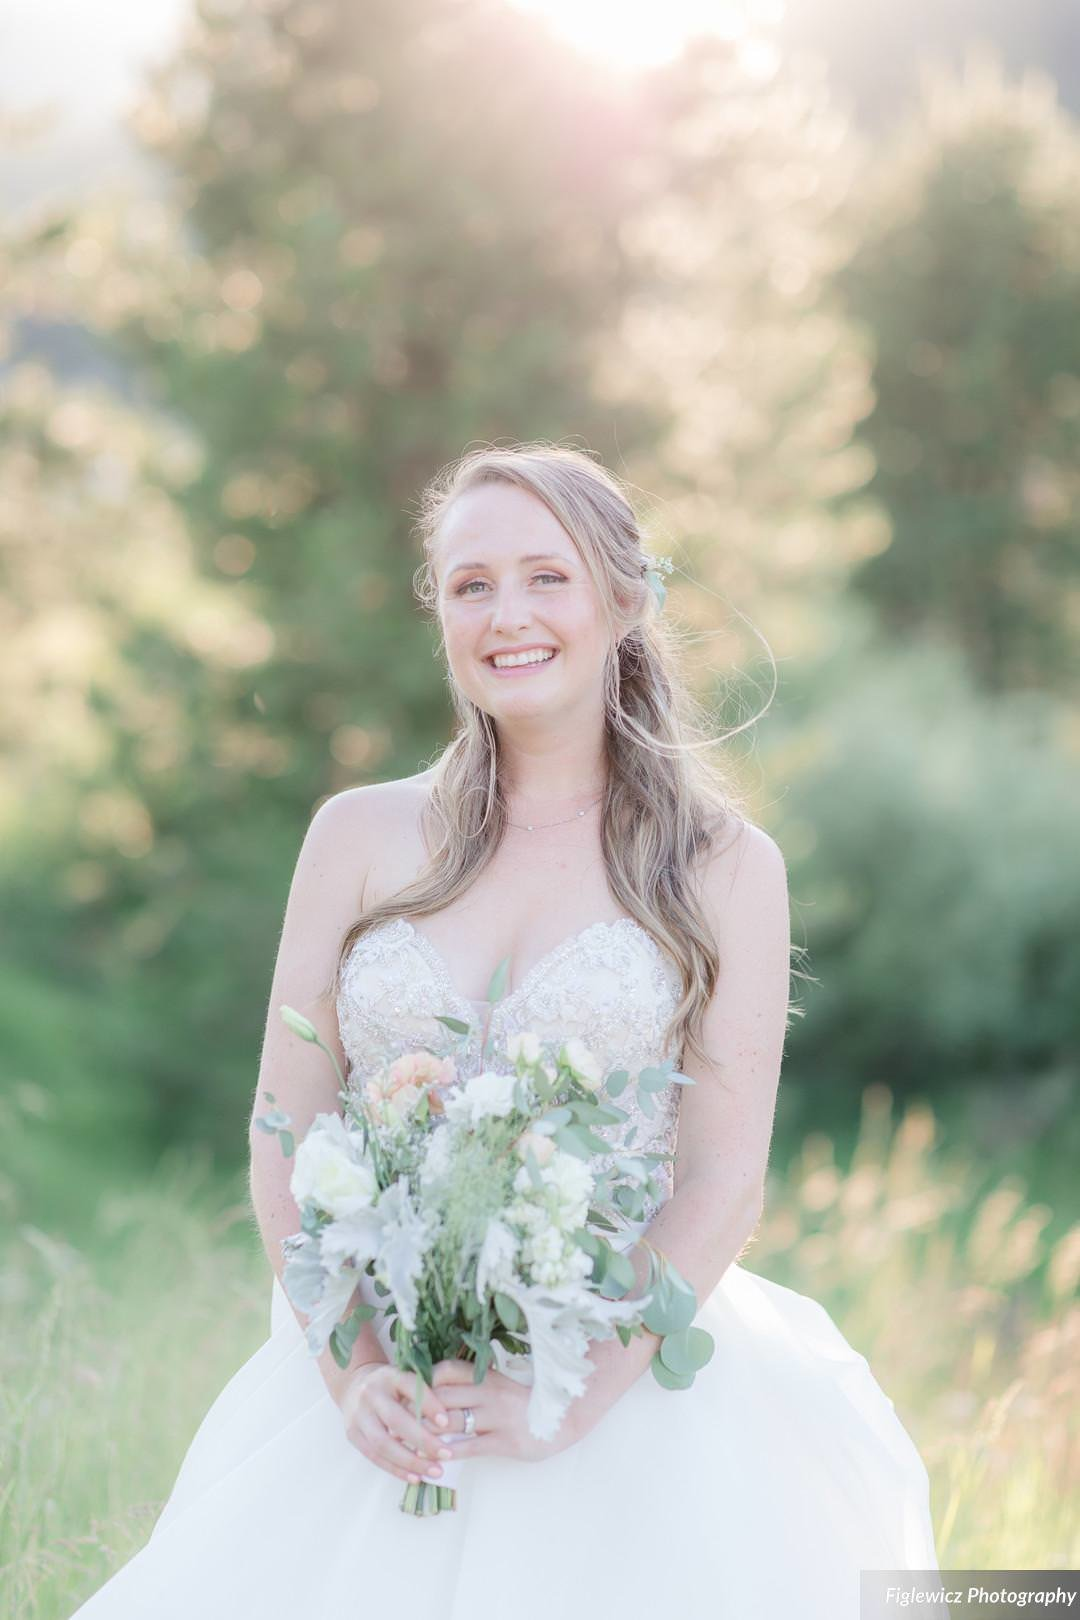 Garden_Tinsley_FiglewiczPhotography_LakeTahoeWeddingSquawValleyCreekTaylorBrendan00140_big